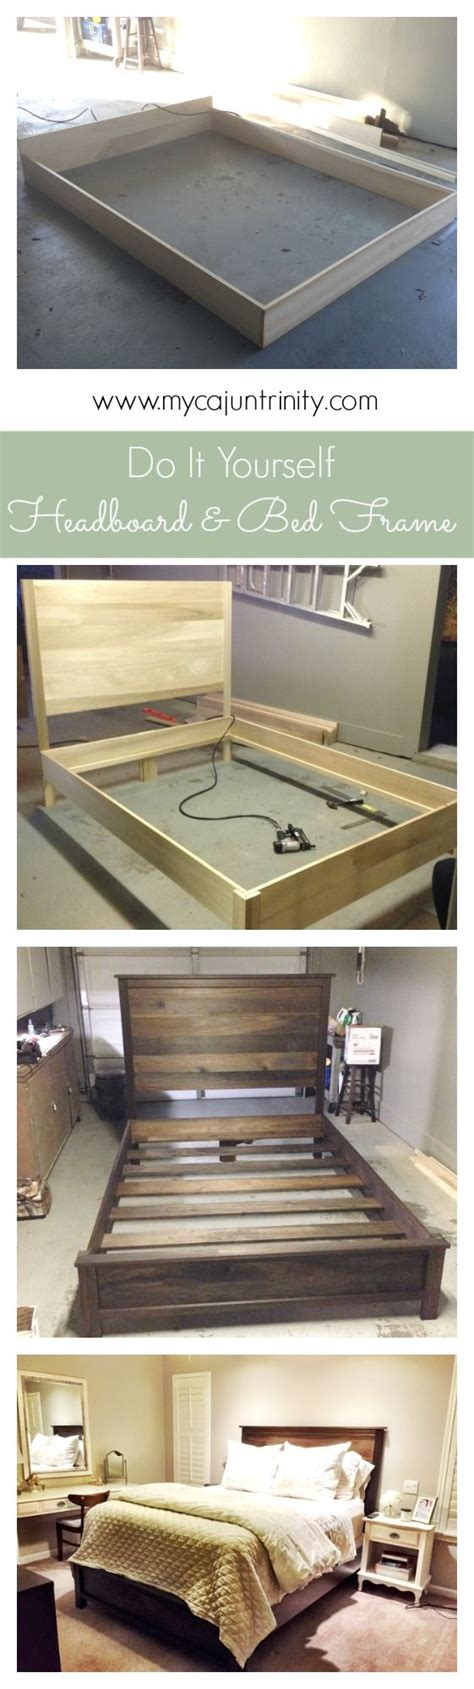 how to build a headboard and footboard step by step on how to build a headboard and